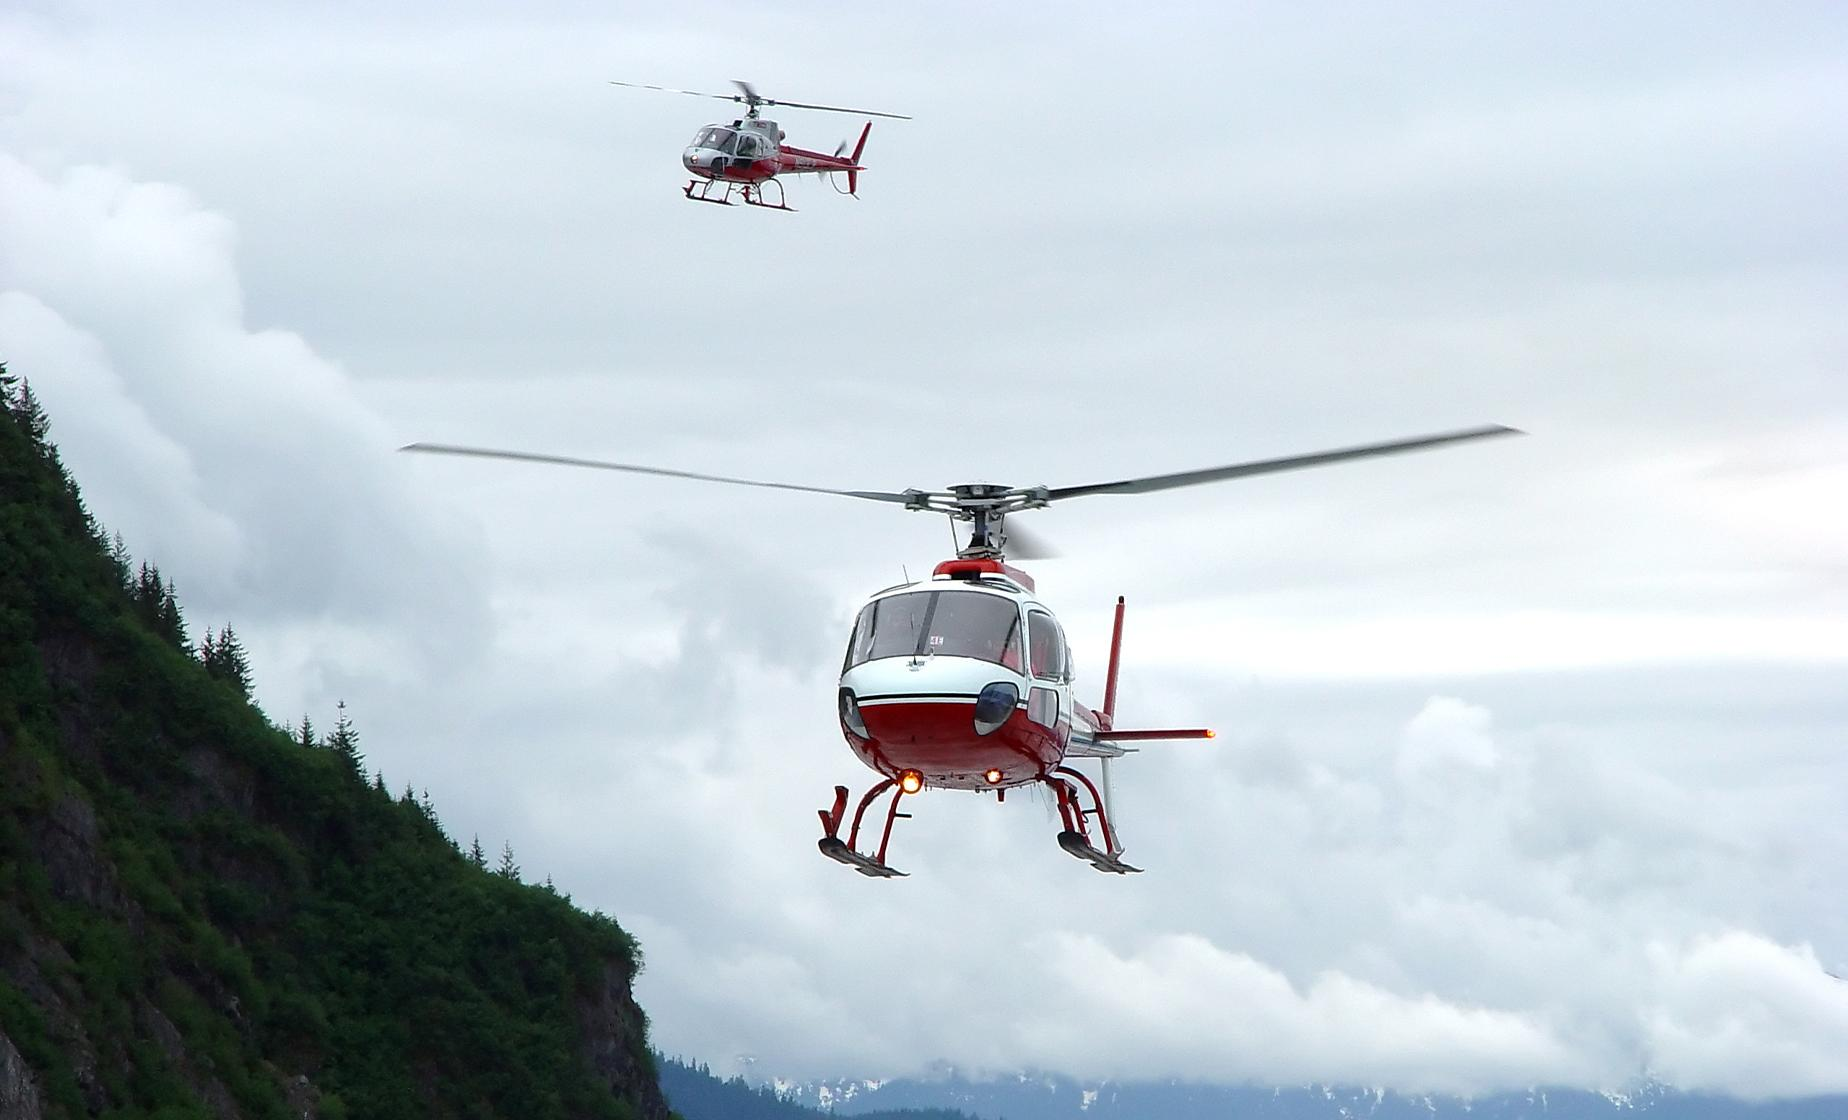 Juneau Icefield Helicopter Tour Excursion in Alaska